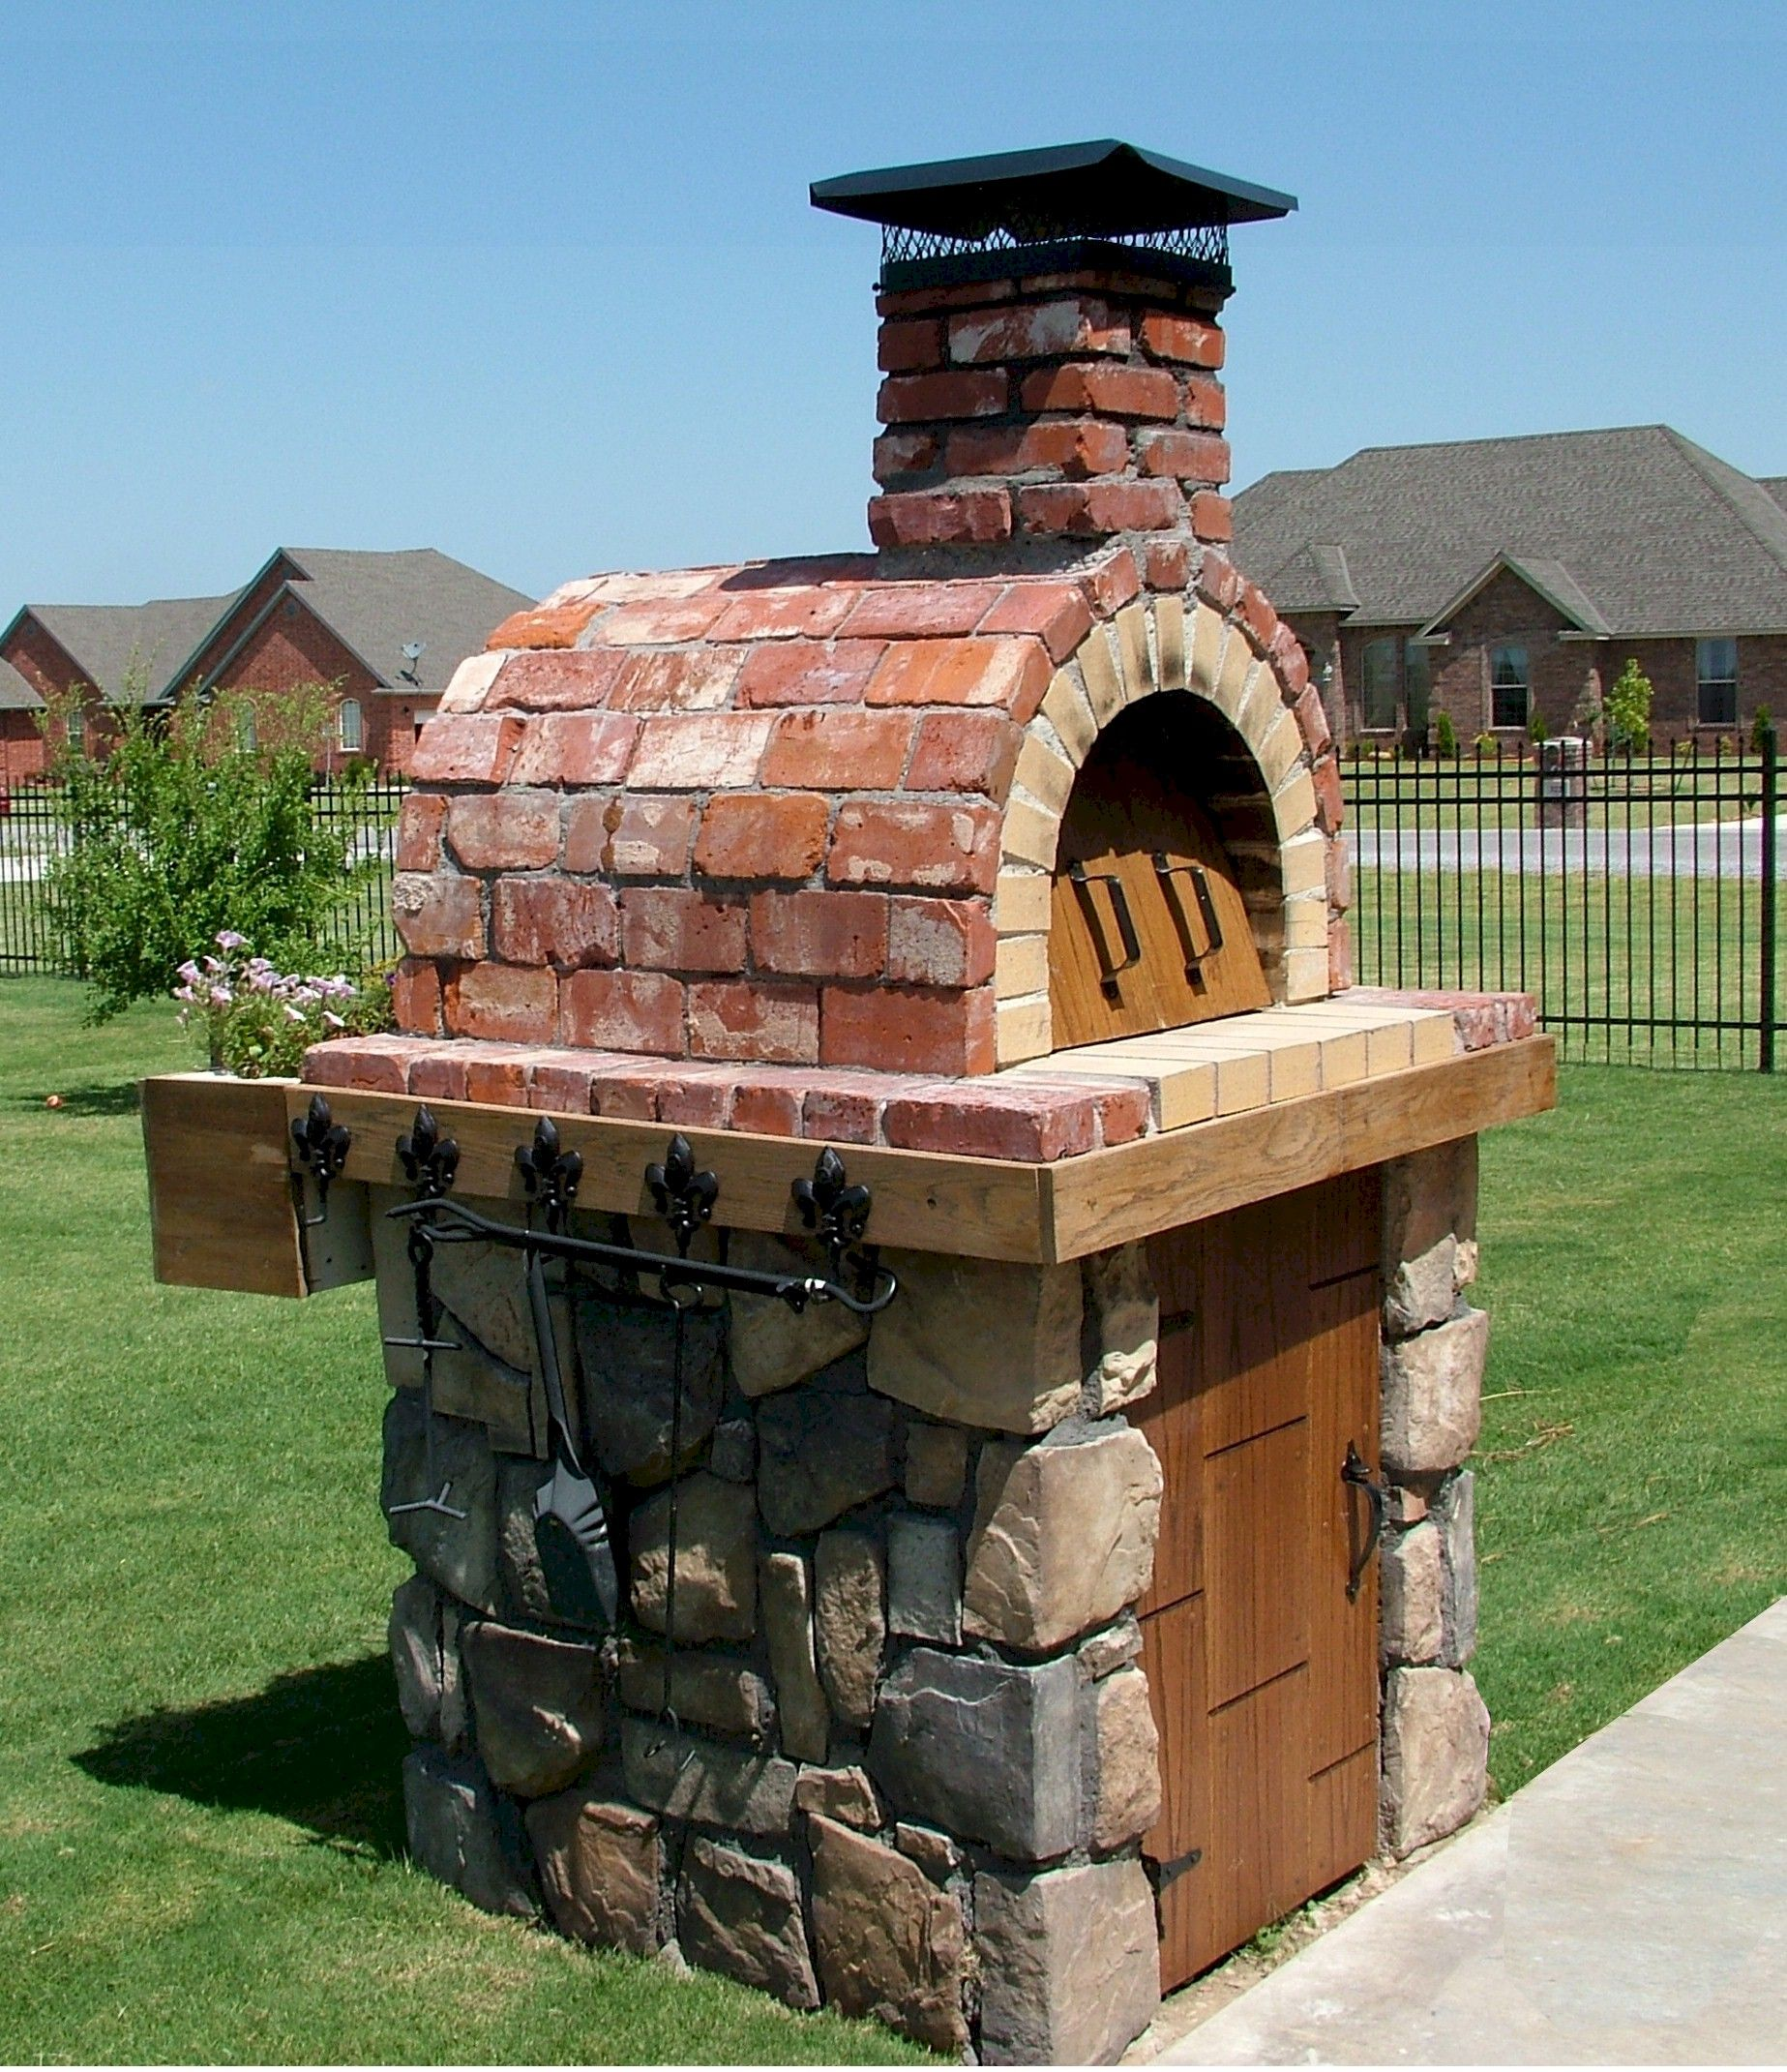 e of the most popular DIY Wood Fired Ovens on the internet This